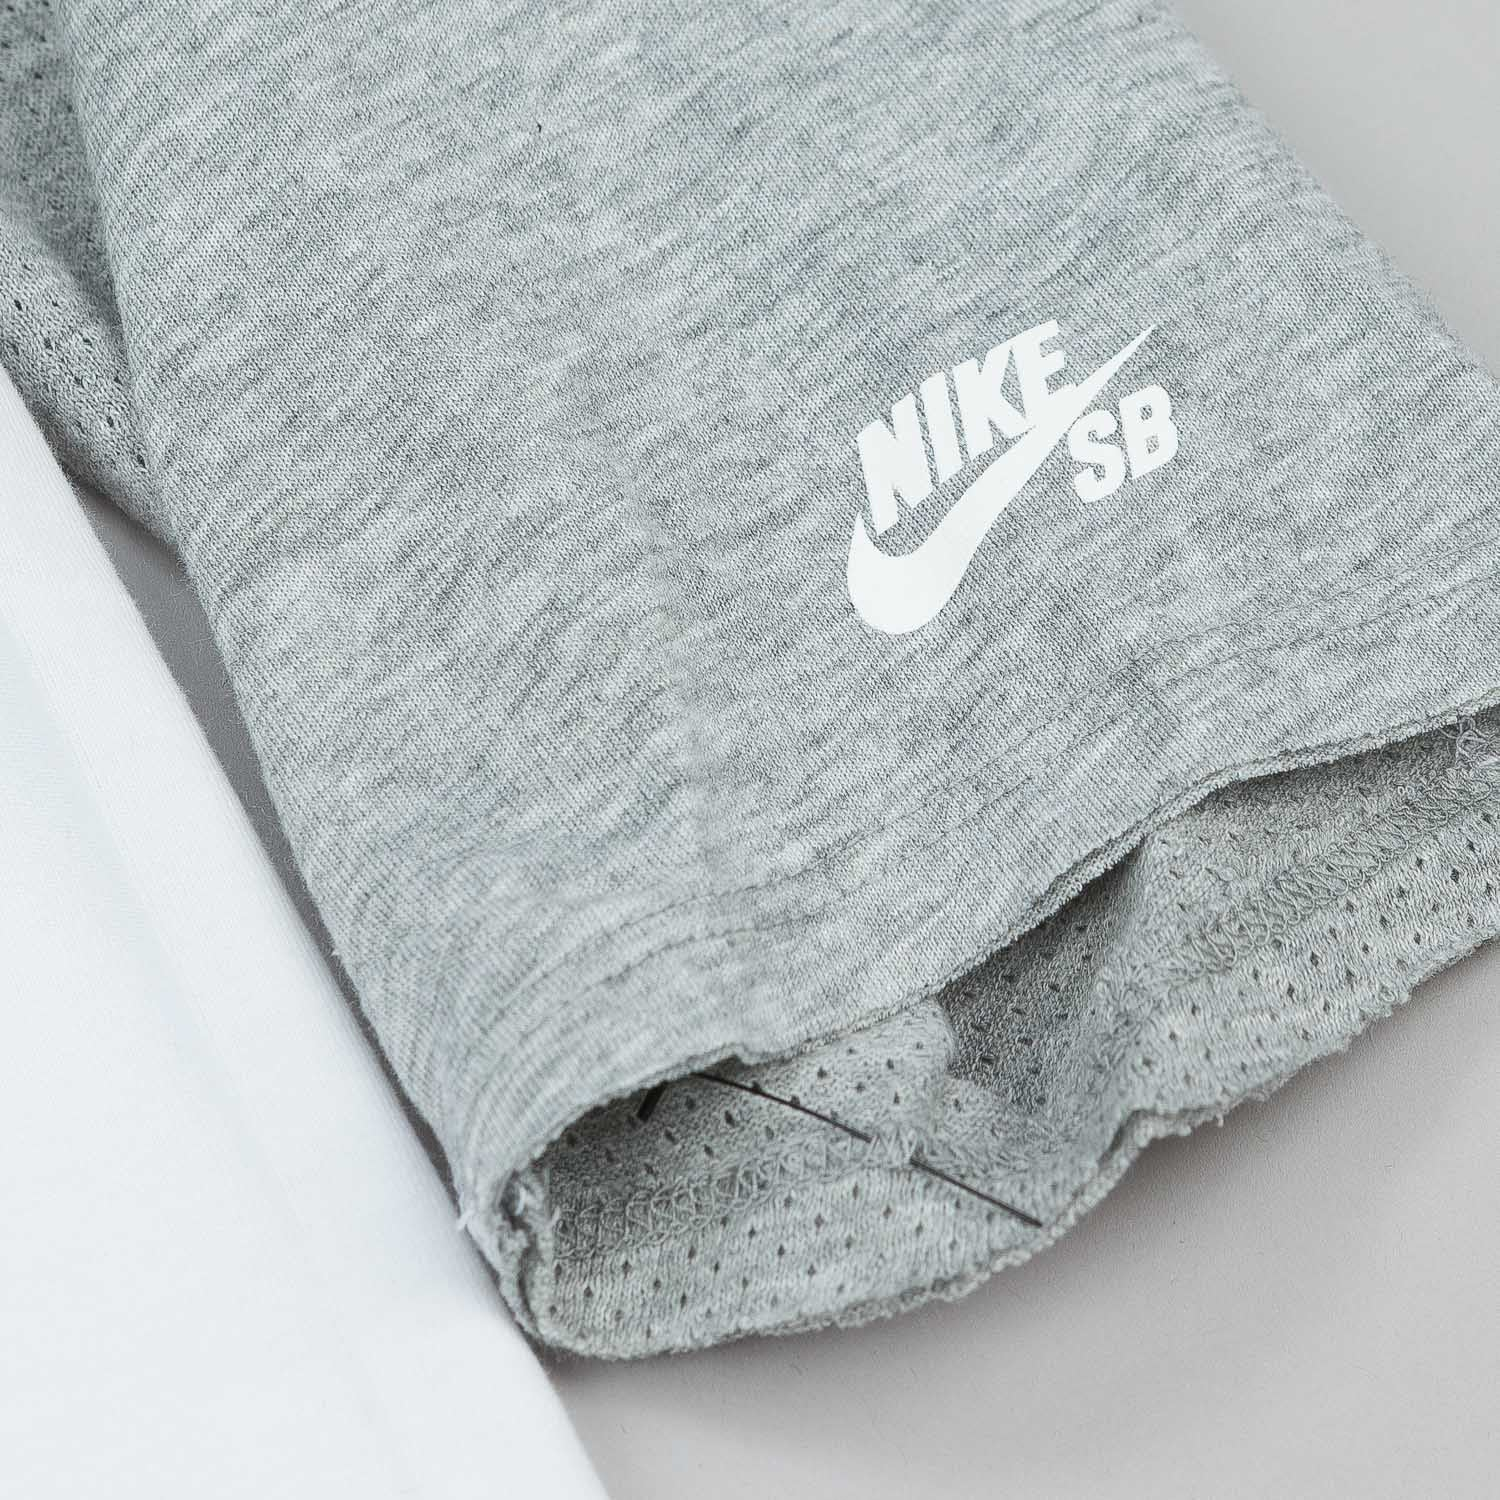 Nike SB Skyline DFC 3/4 Sleeve Raglan T-Shirt - White / Grey Heather